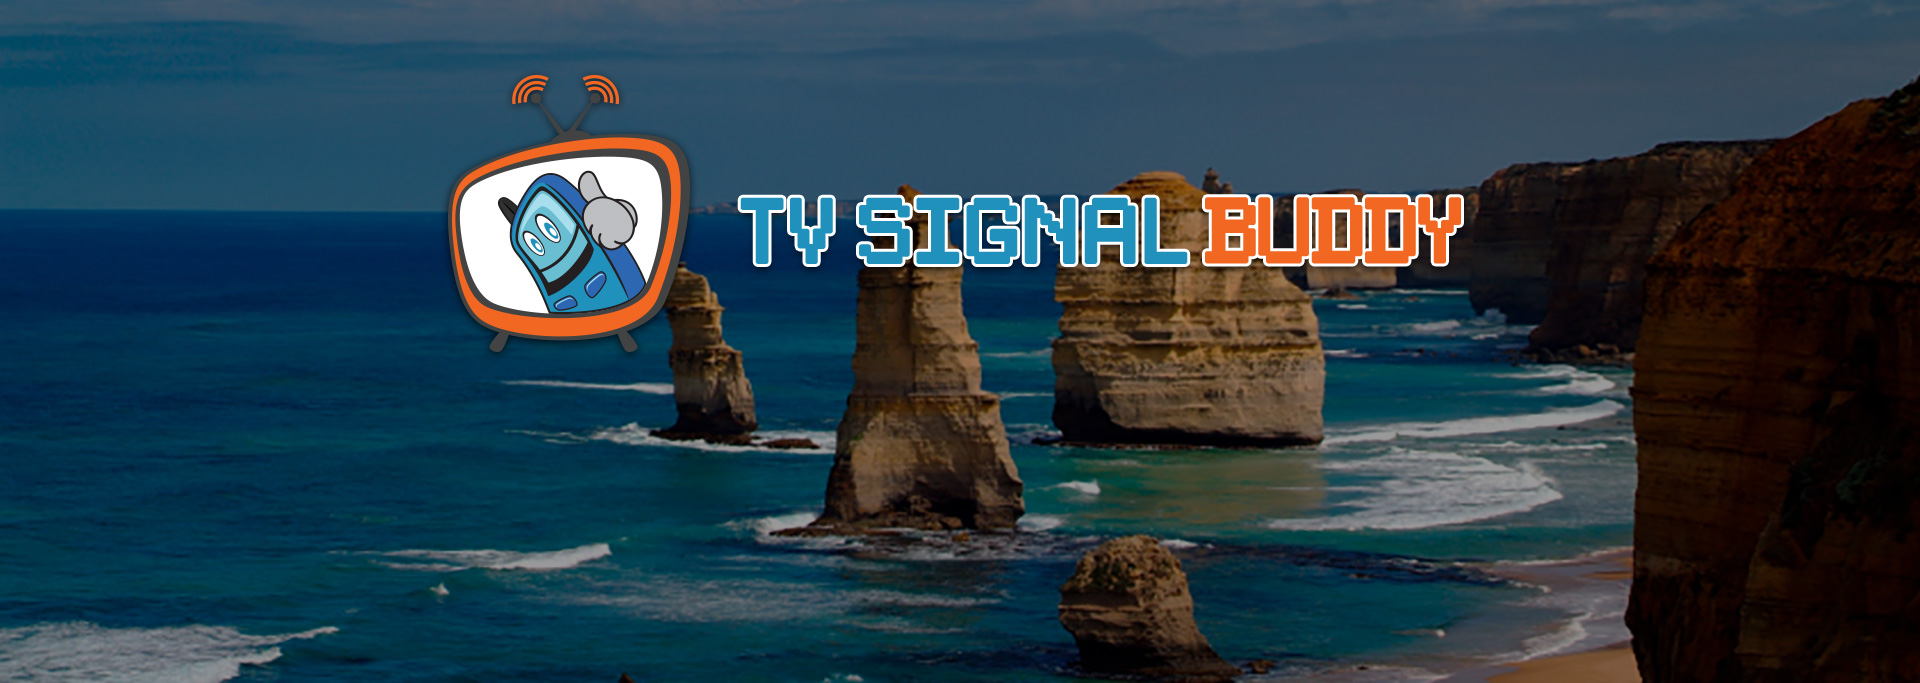 tv-signal-buddy-home-banner2